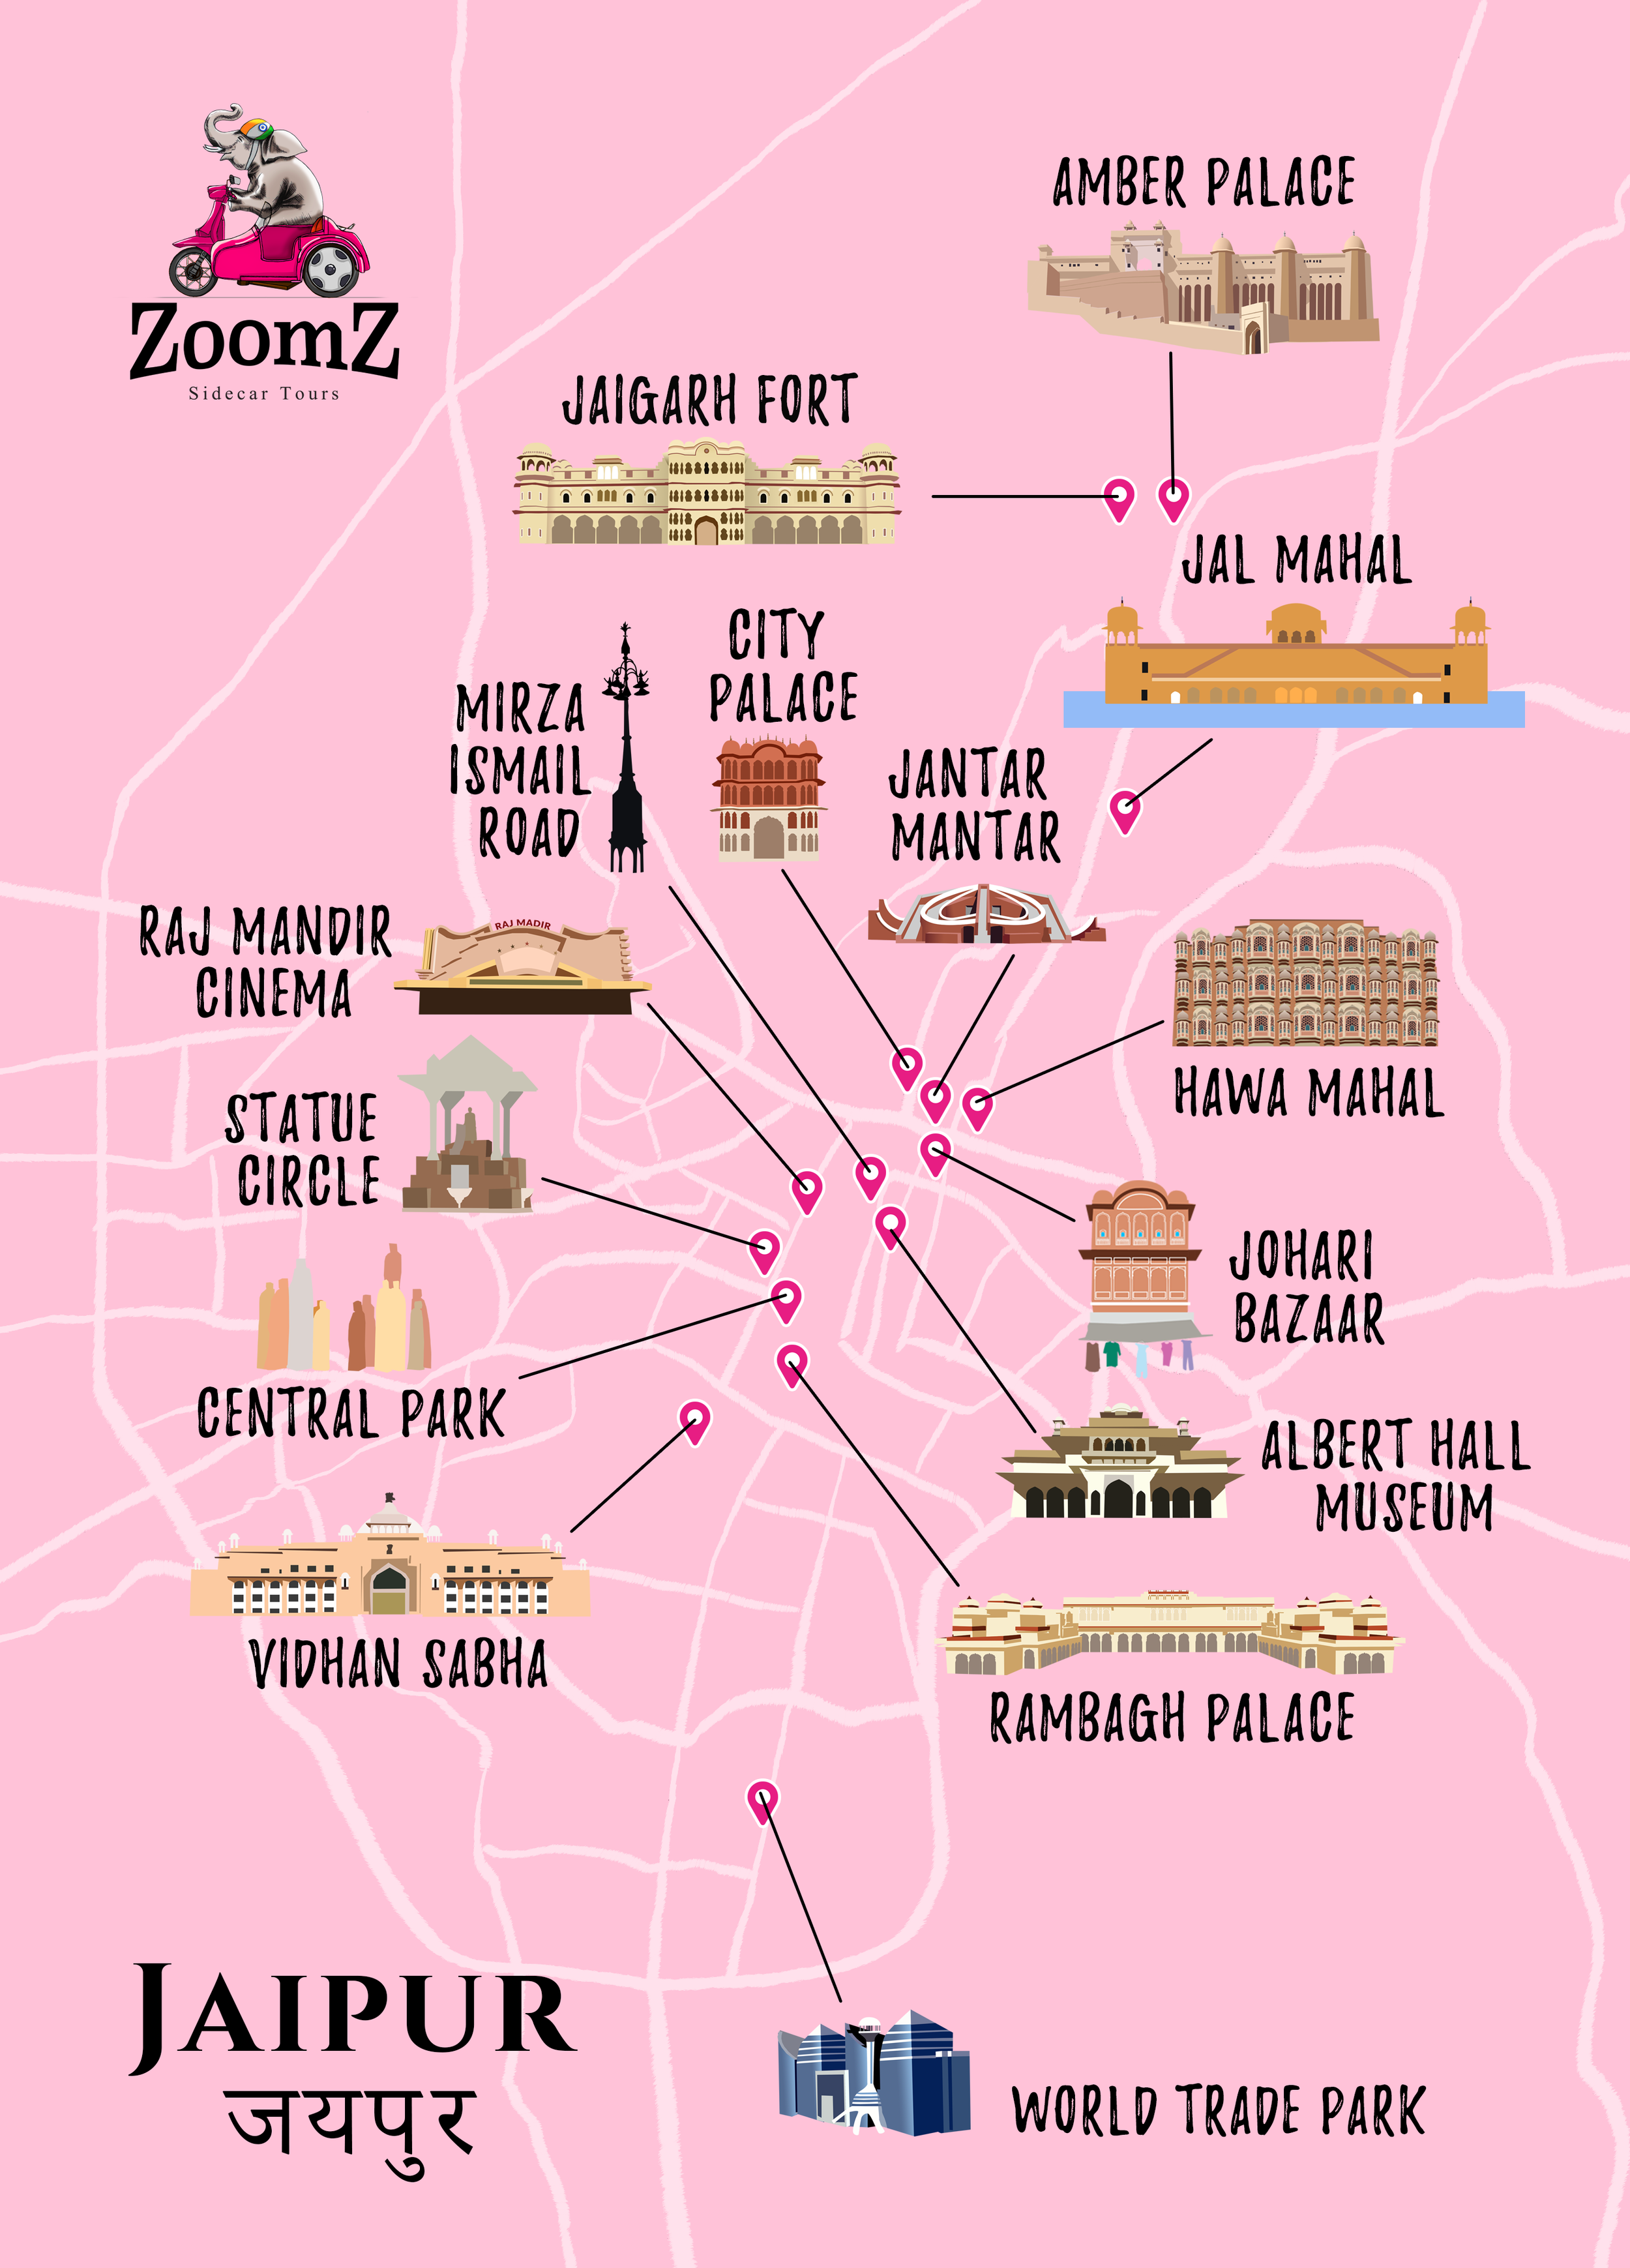 zoomz_map_india_jaipur_tourist_attractions